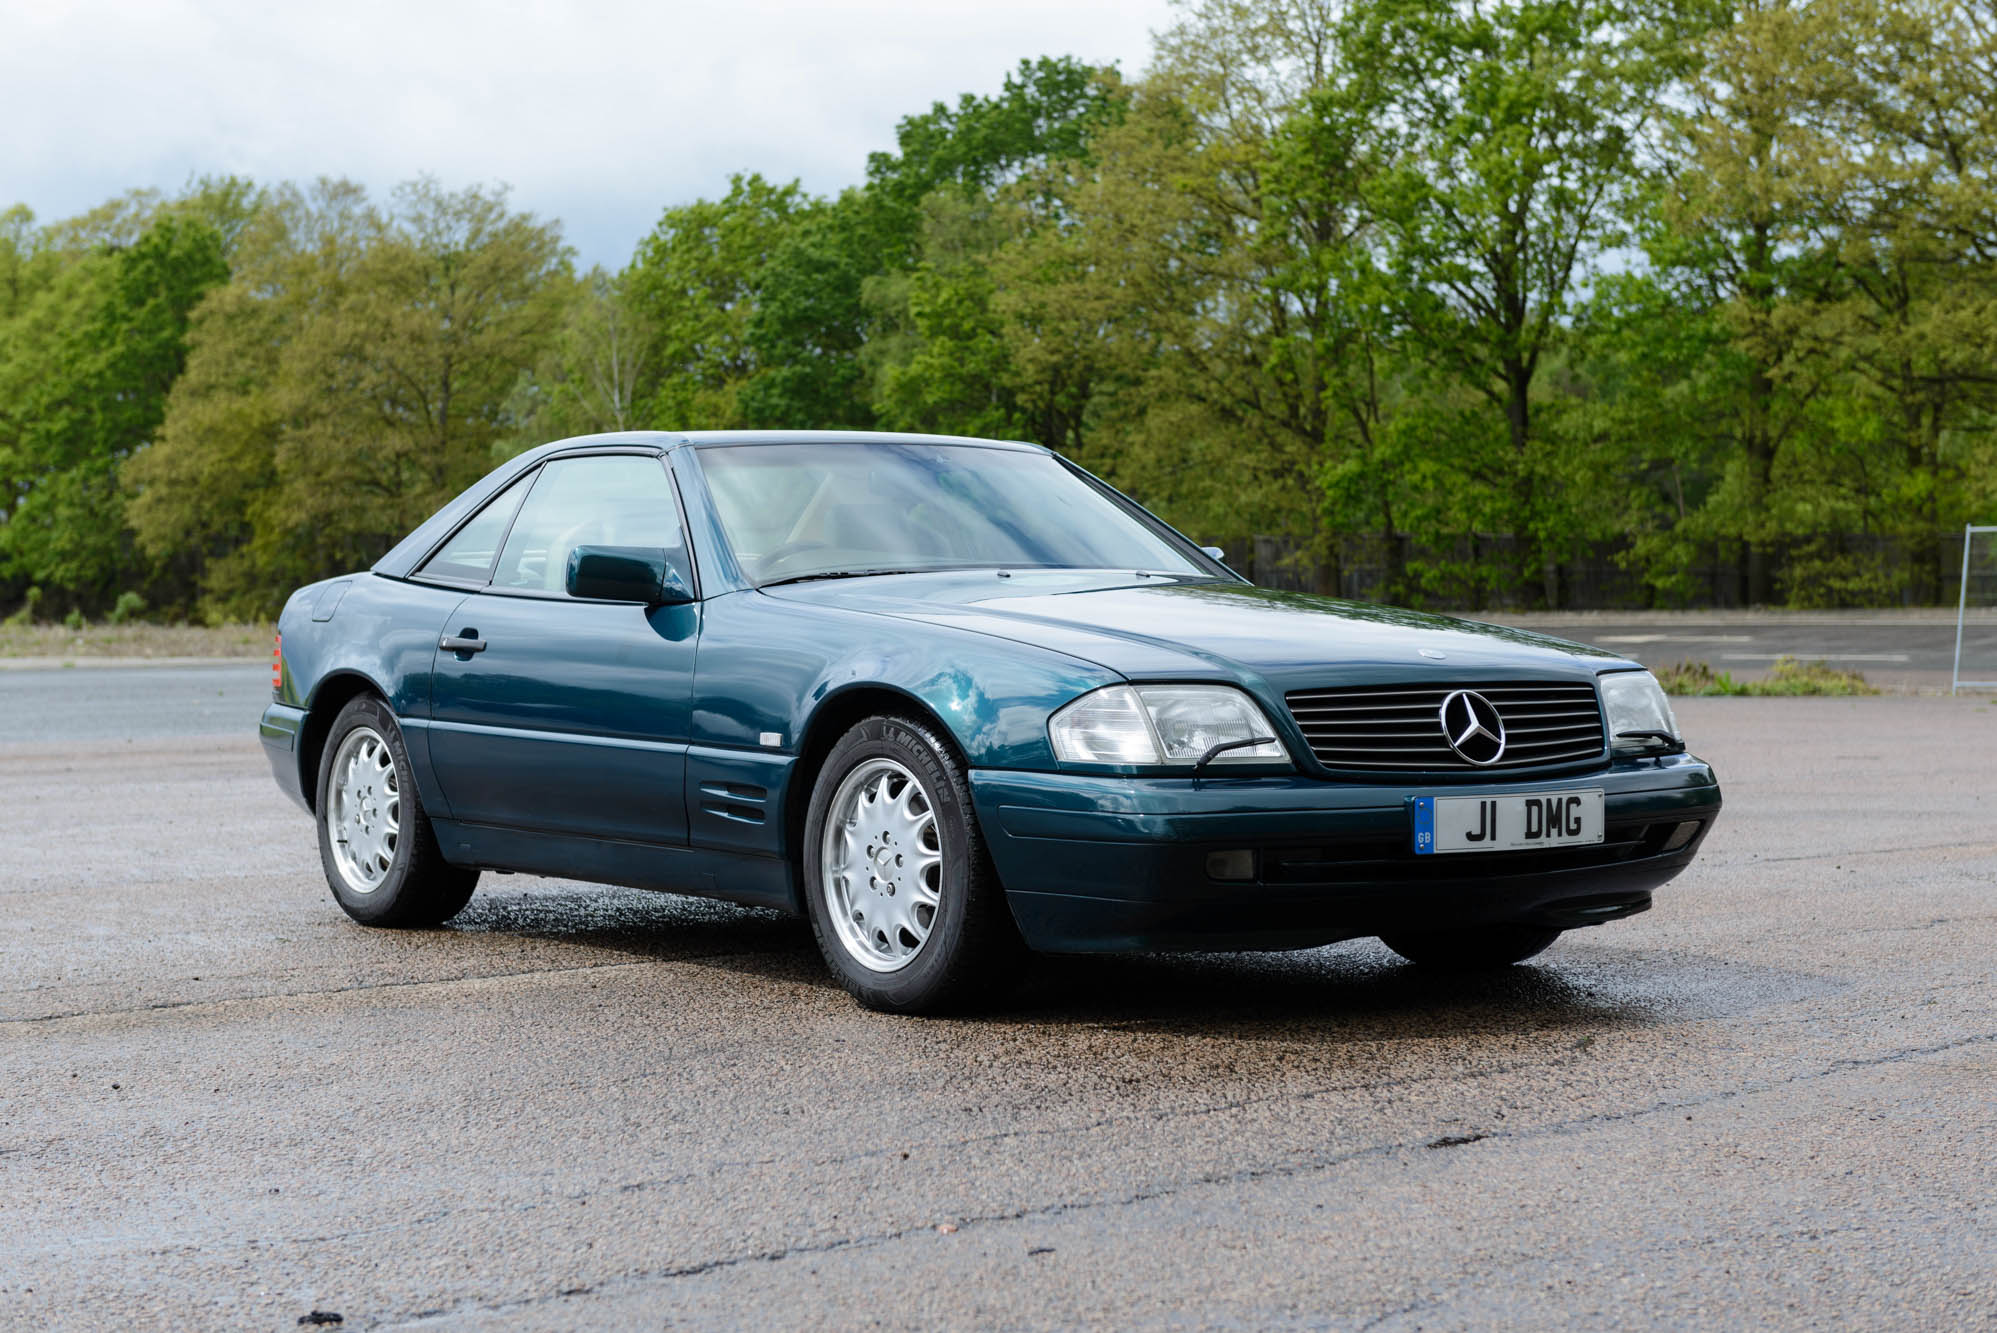 1996 MERCEDES-BENZ SL320 - 1 OWNER FROM NEW